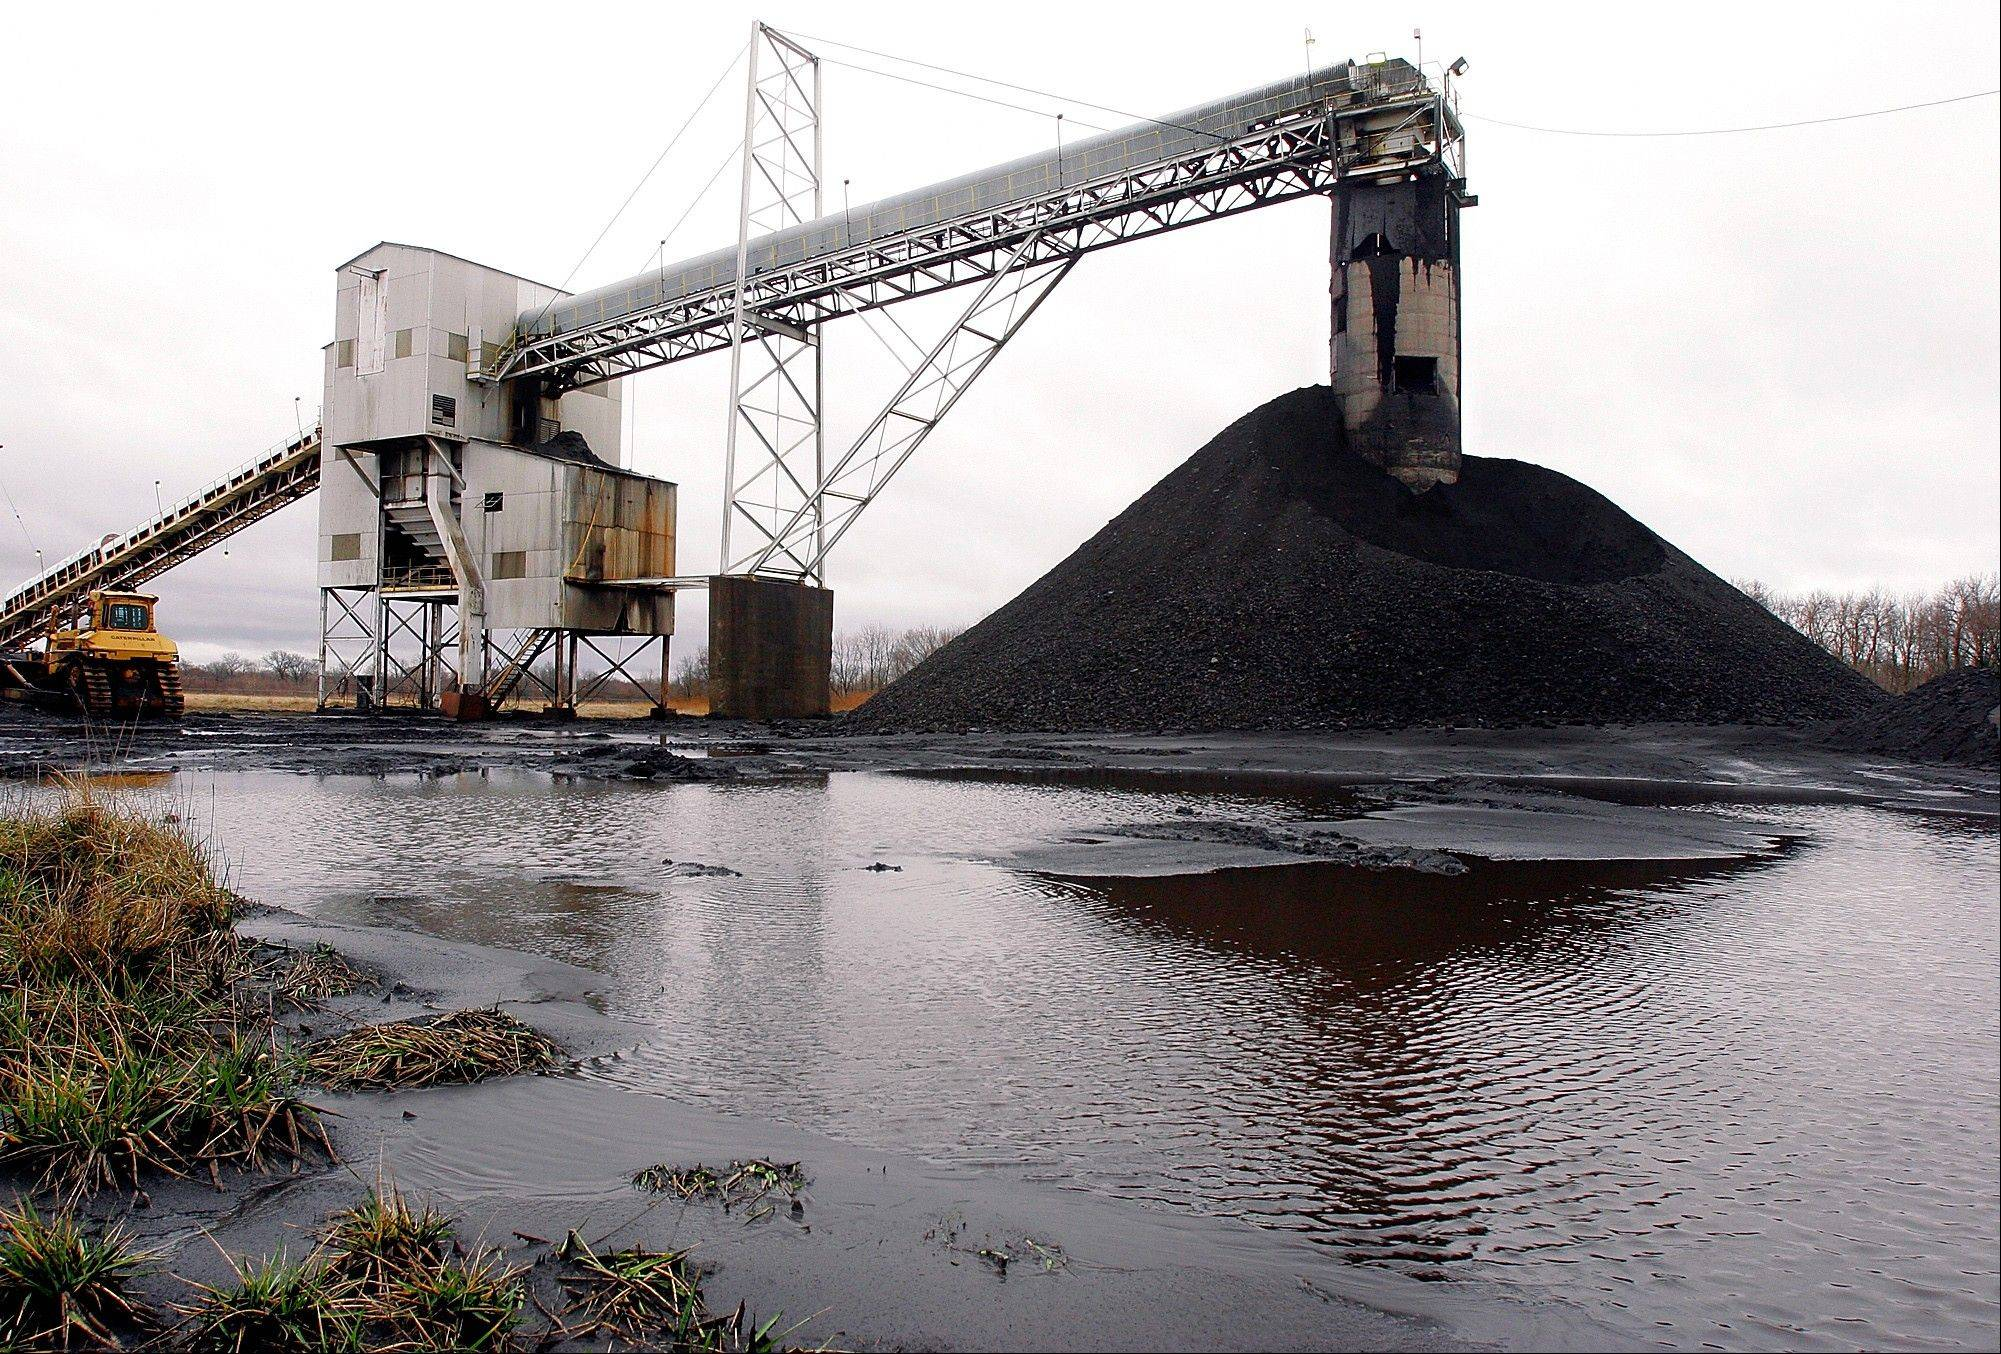 The Illinois Office of Coal Development said that 13 million tons of Illinois coal was exported last year. That�s a fivefold increase from the 2.5 million tons shipped out of the U.S. in 2010.